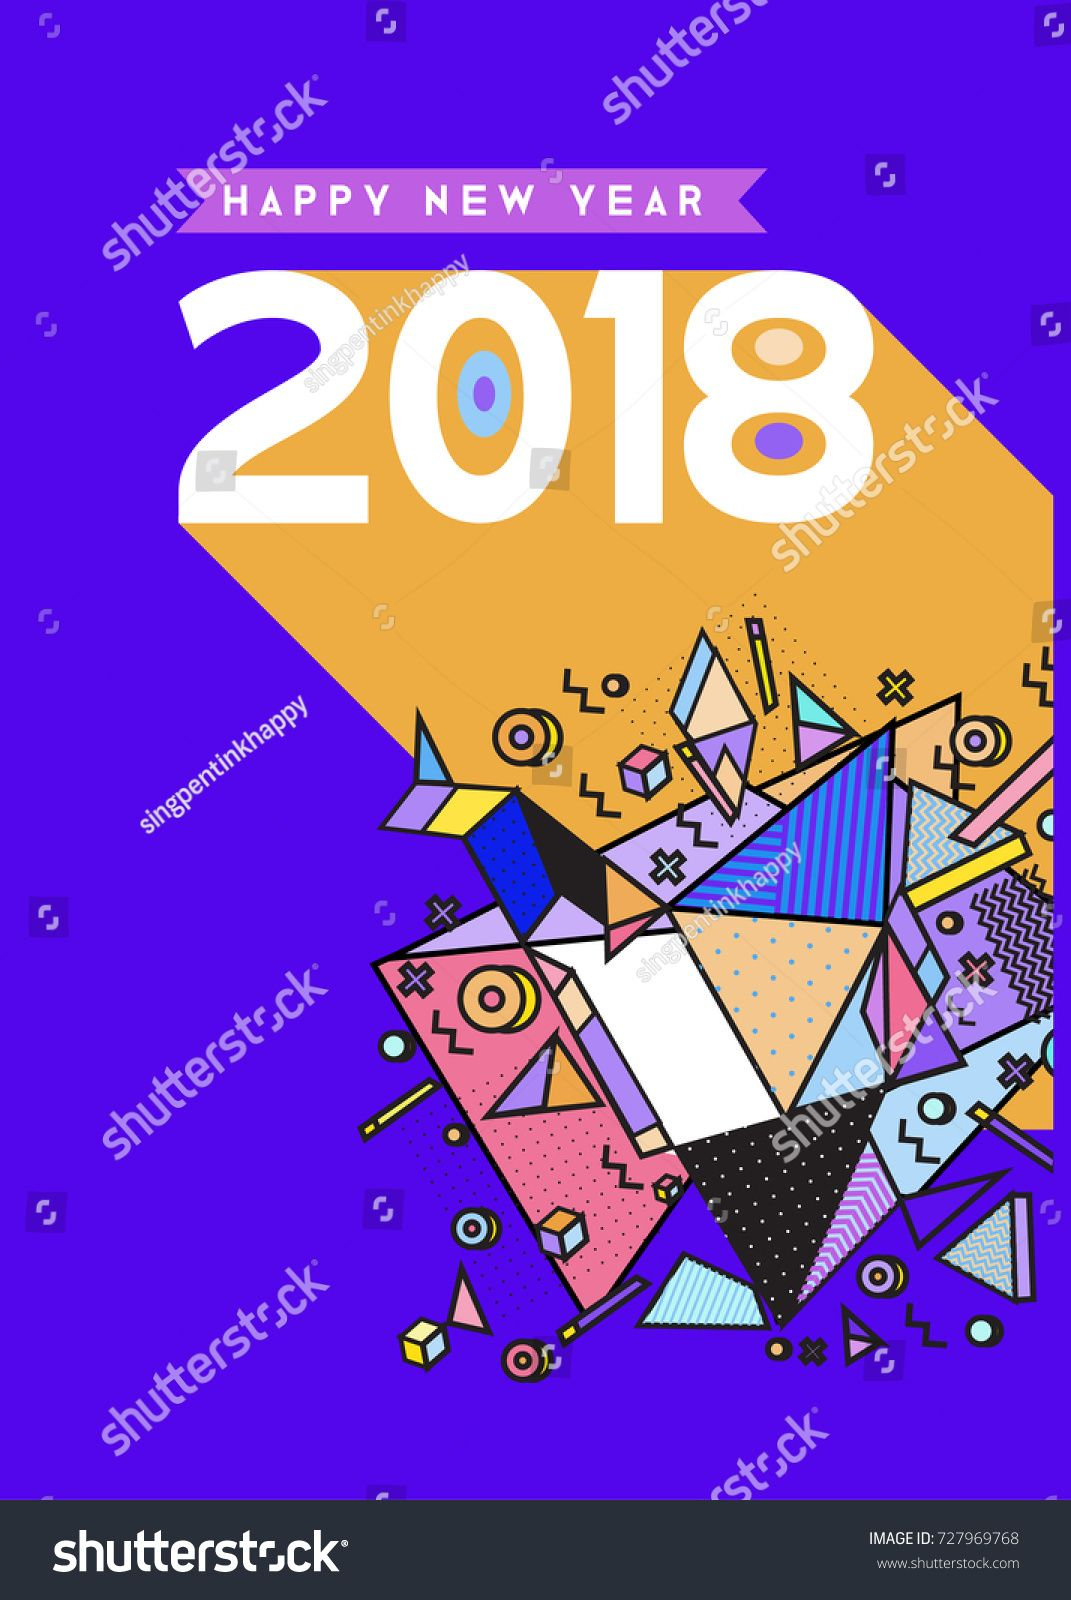 Happy New Year 2018 colorful abstract design, vector